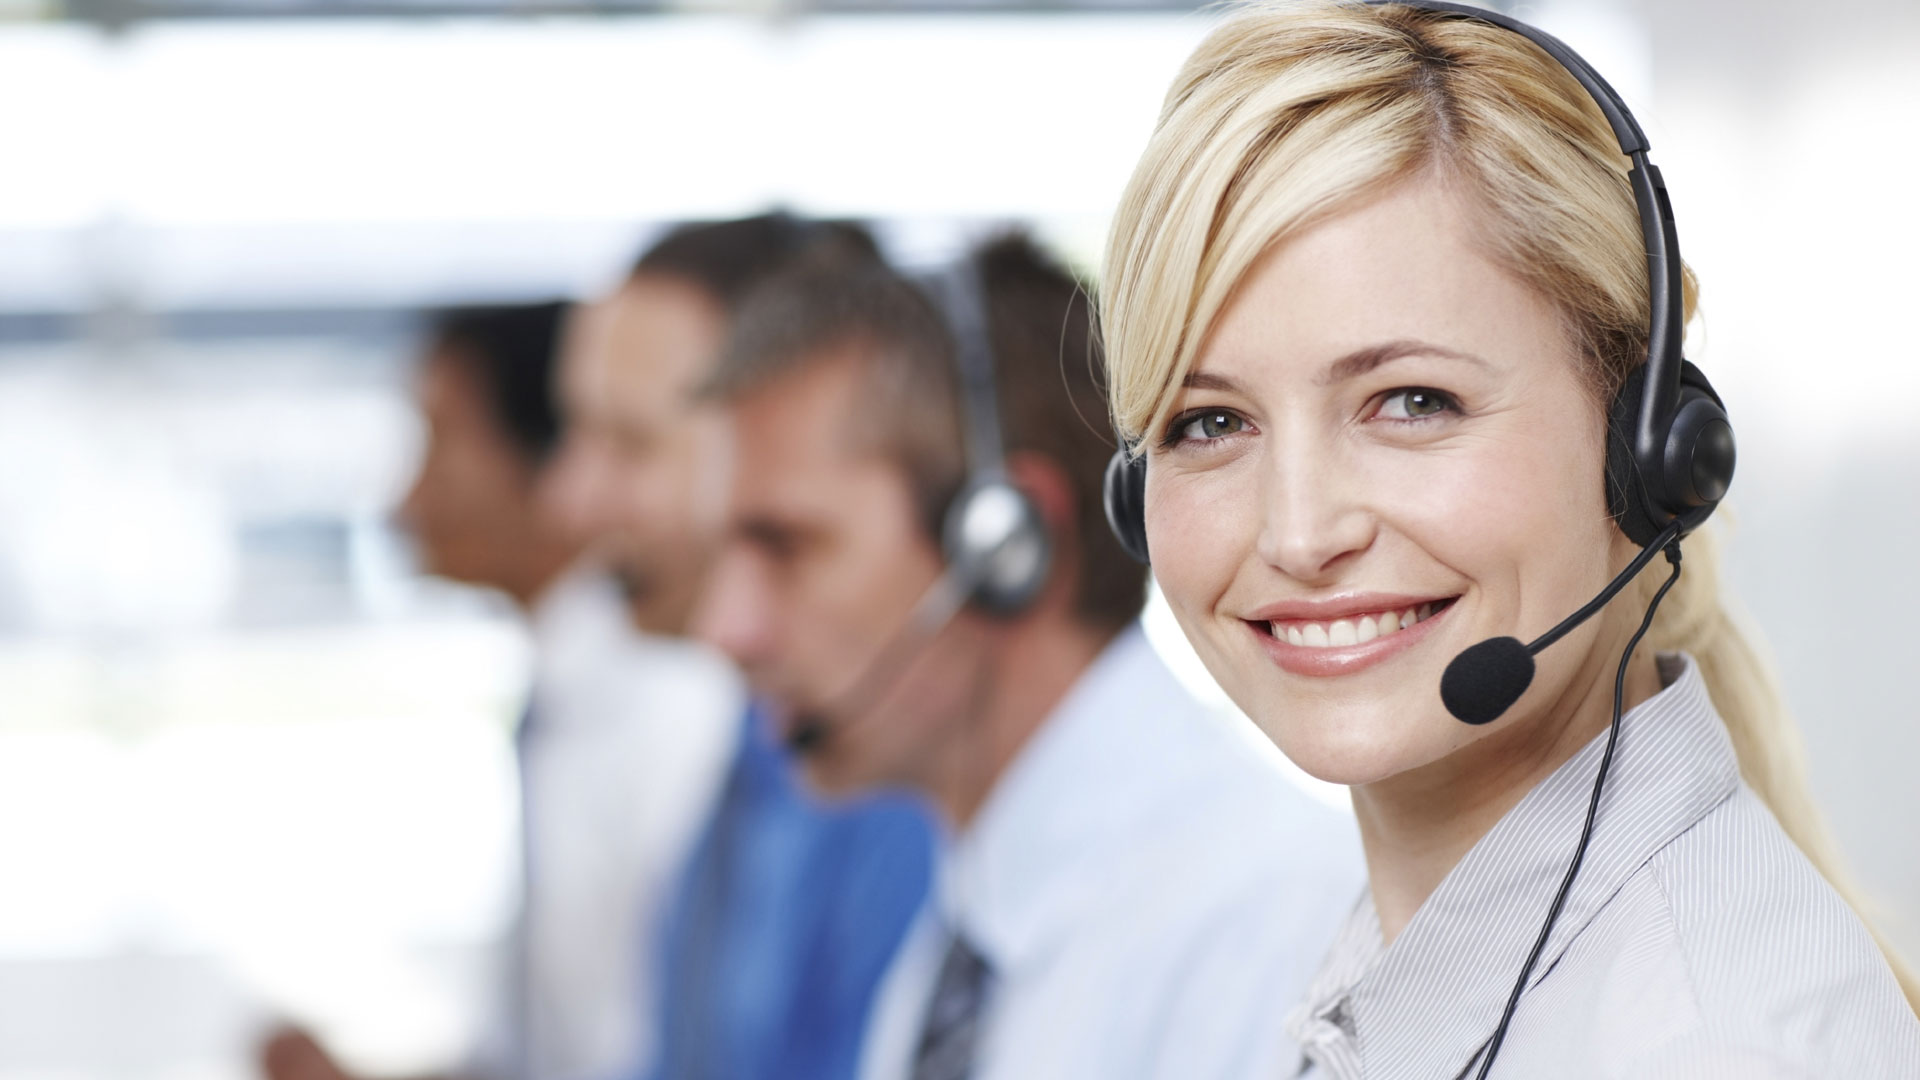 IMPROVE REAL-TIME CUSTOMER SERVICE